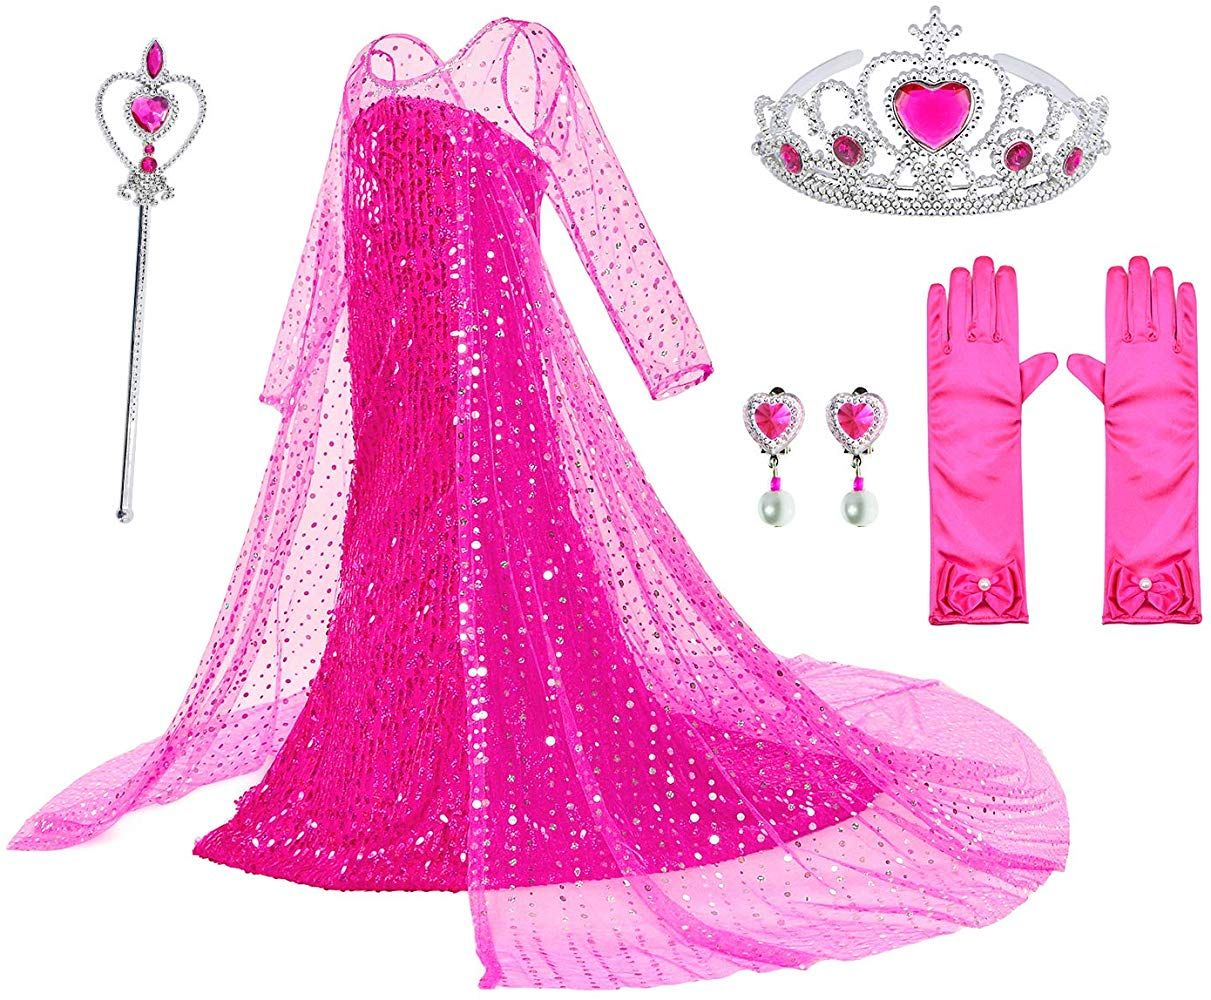 Luxury Princess Dress For Aurora Costumes With Shining Long Cap Girls Birthday Party 5t 6t Princess Dress Disney Princess Dress Up Disney Princess Dresses [ 1000 x 1211 Pixel ]